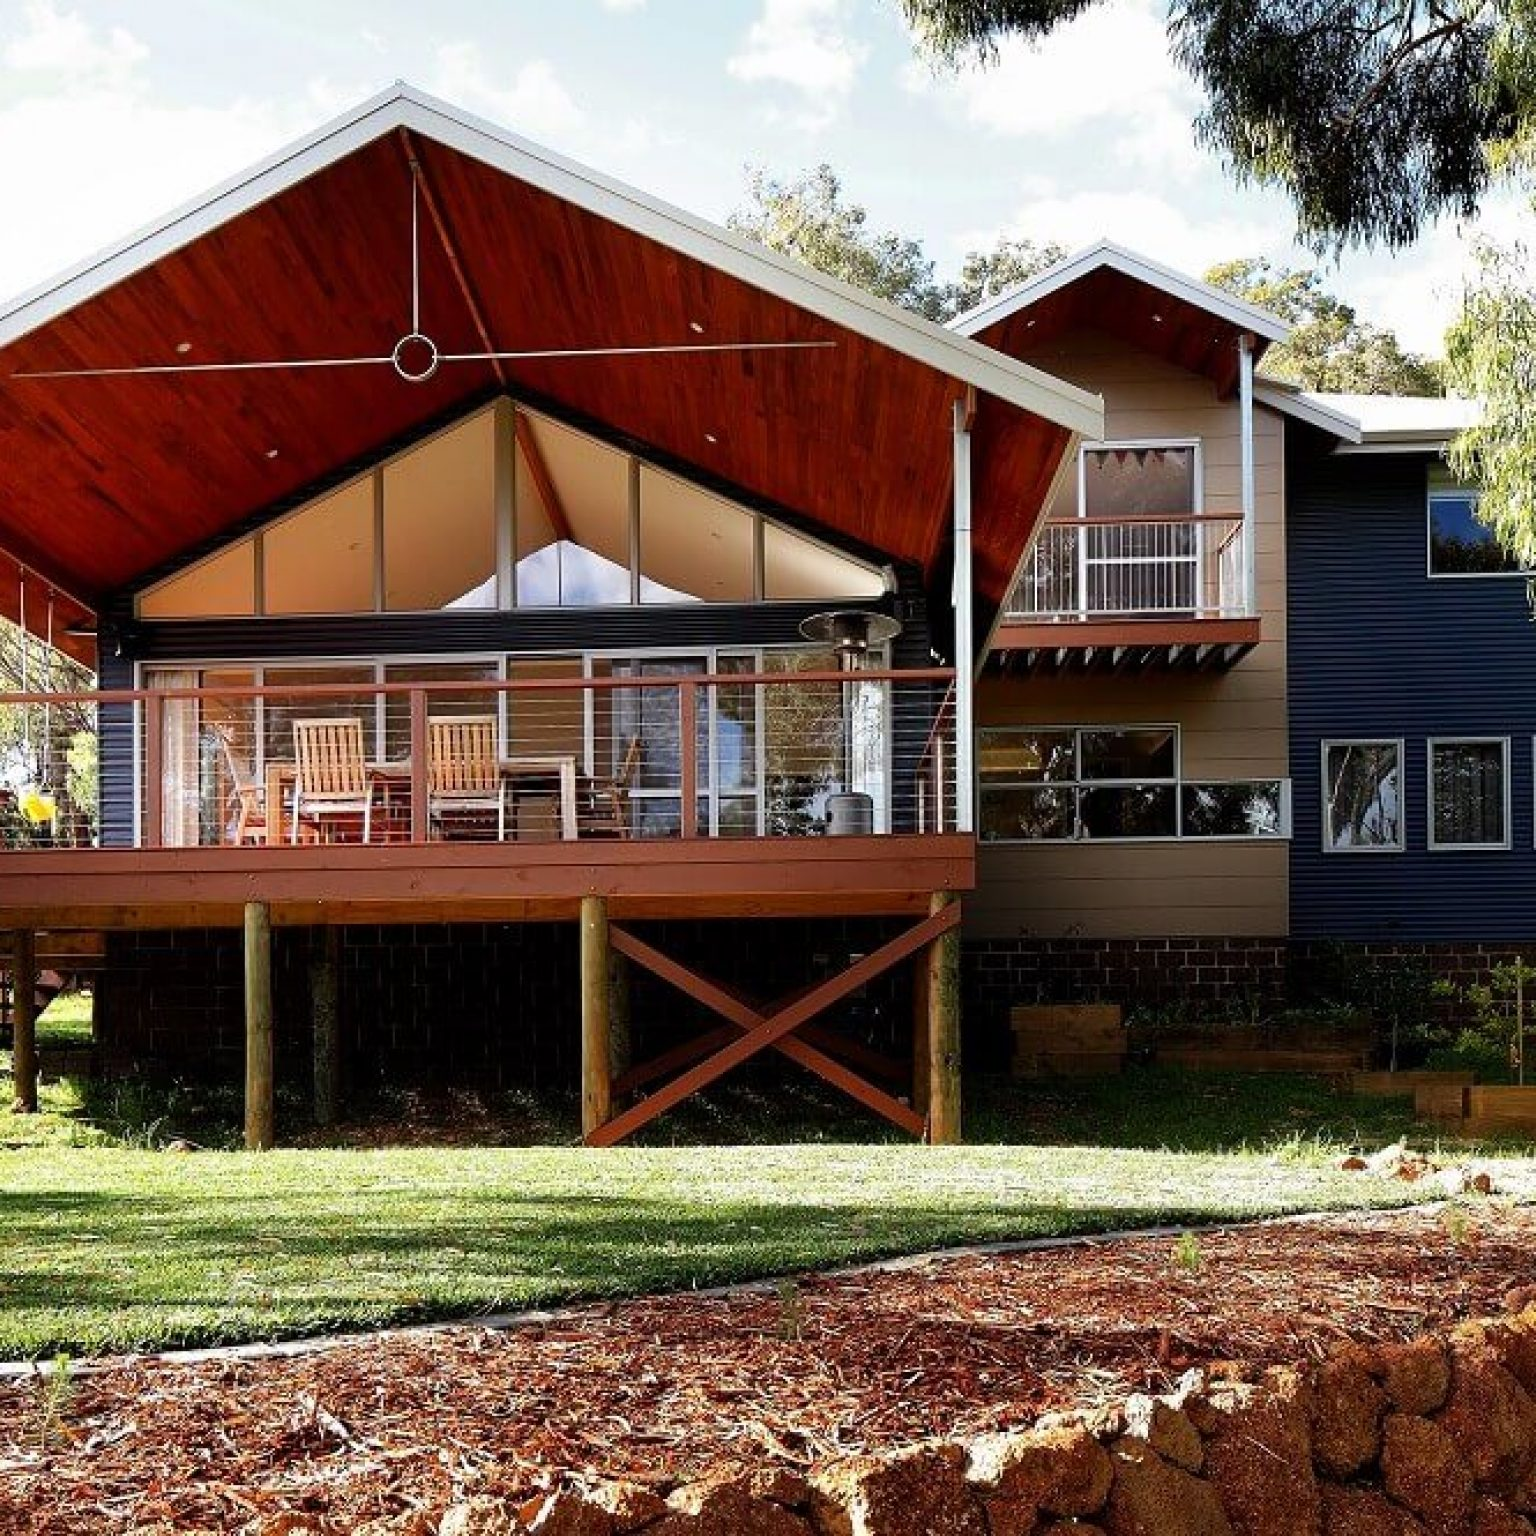 Custom built timber frame pole home in Darlington, Western Australia